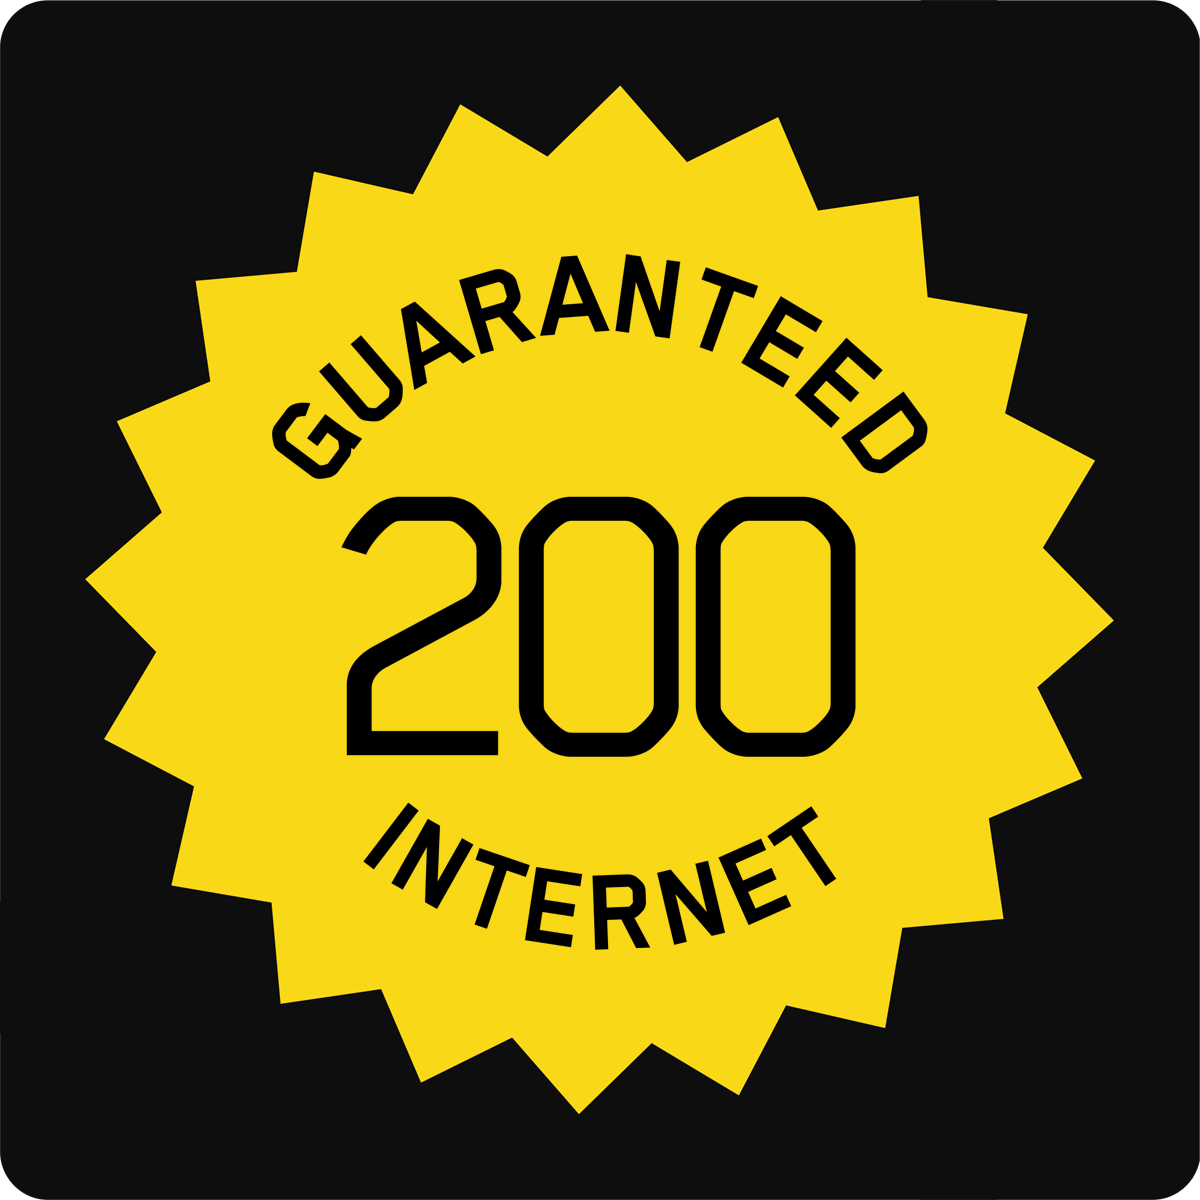 200/50 Guaranteed Internet Access